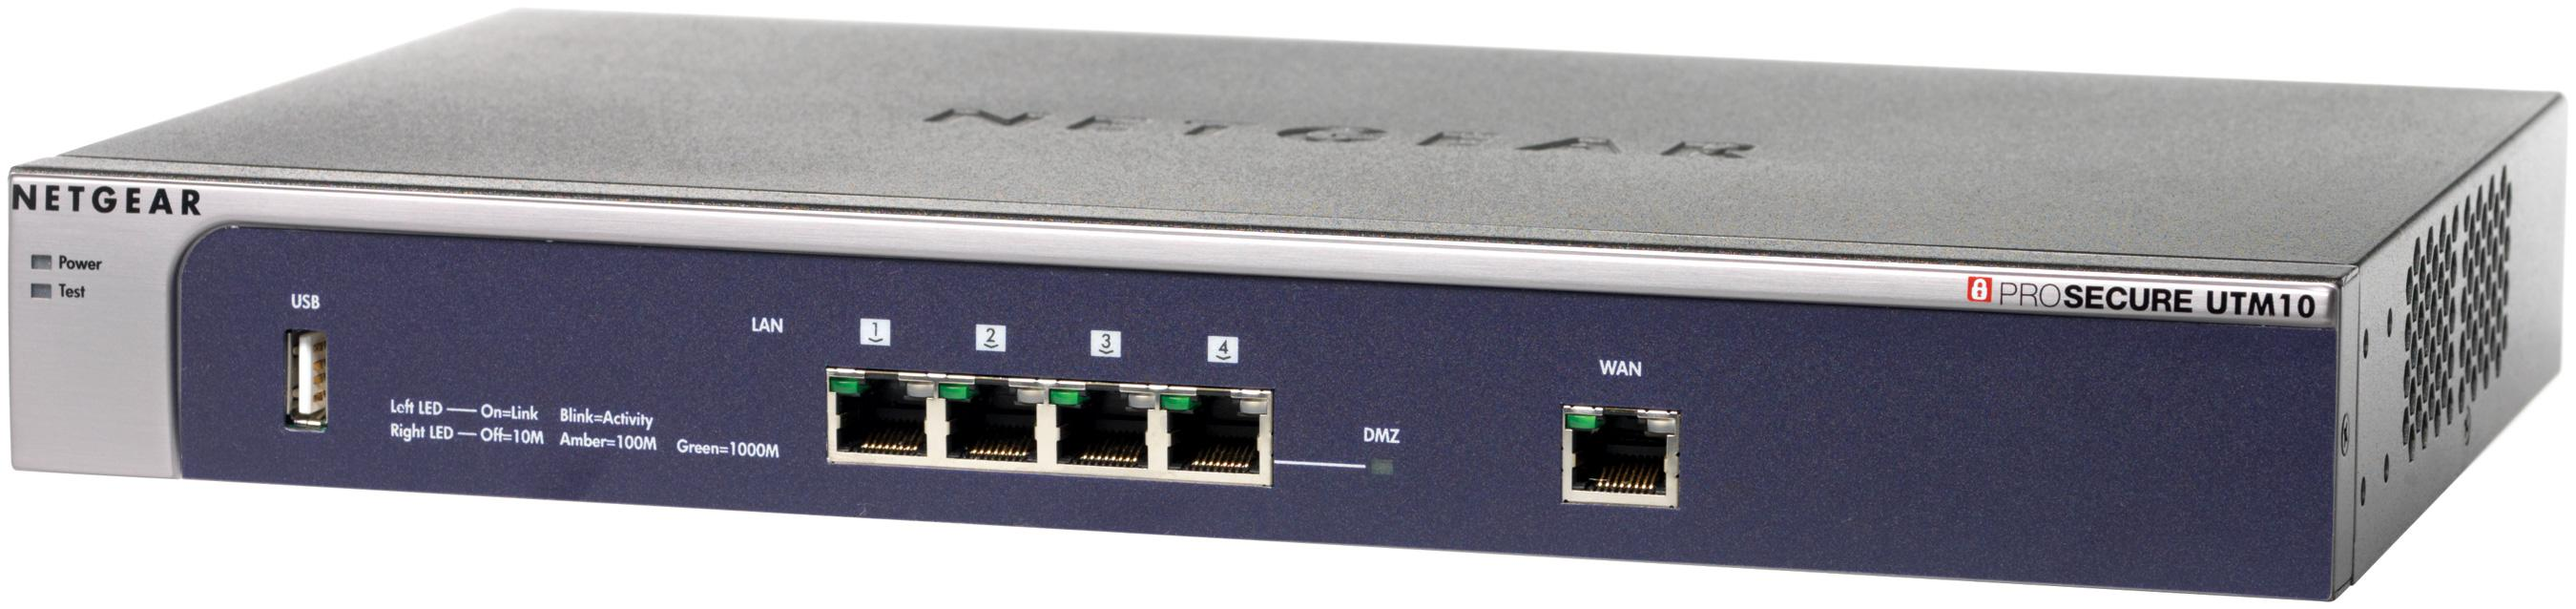 Bundle: Netgear ProSecure Unified Threat Management 10 Appliance + 1 Year Web + 1 Year Email + 1 Year Software Maintenance and Upgrades, 24/7 Support and Advanced Replacement